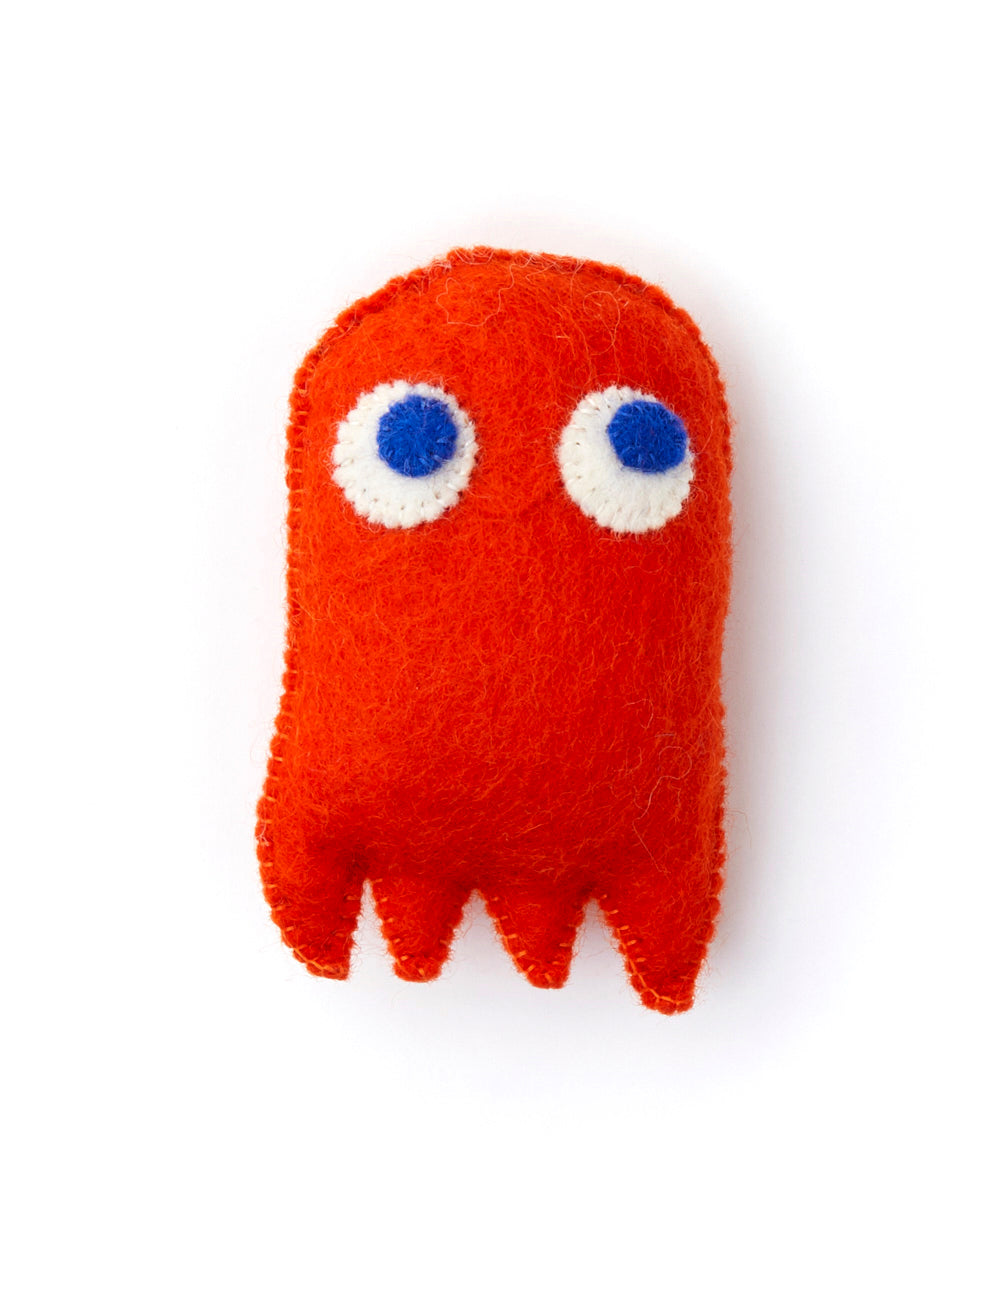 Pacman Dog Toy | Orange